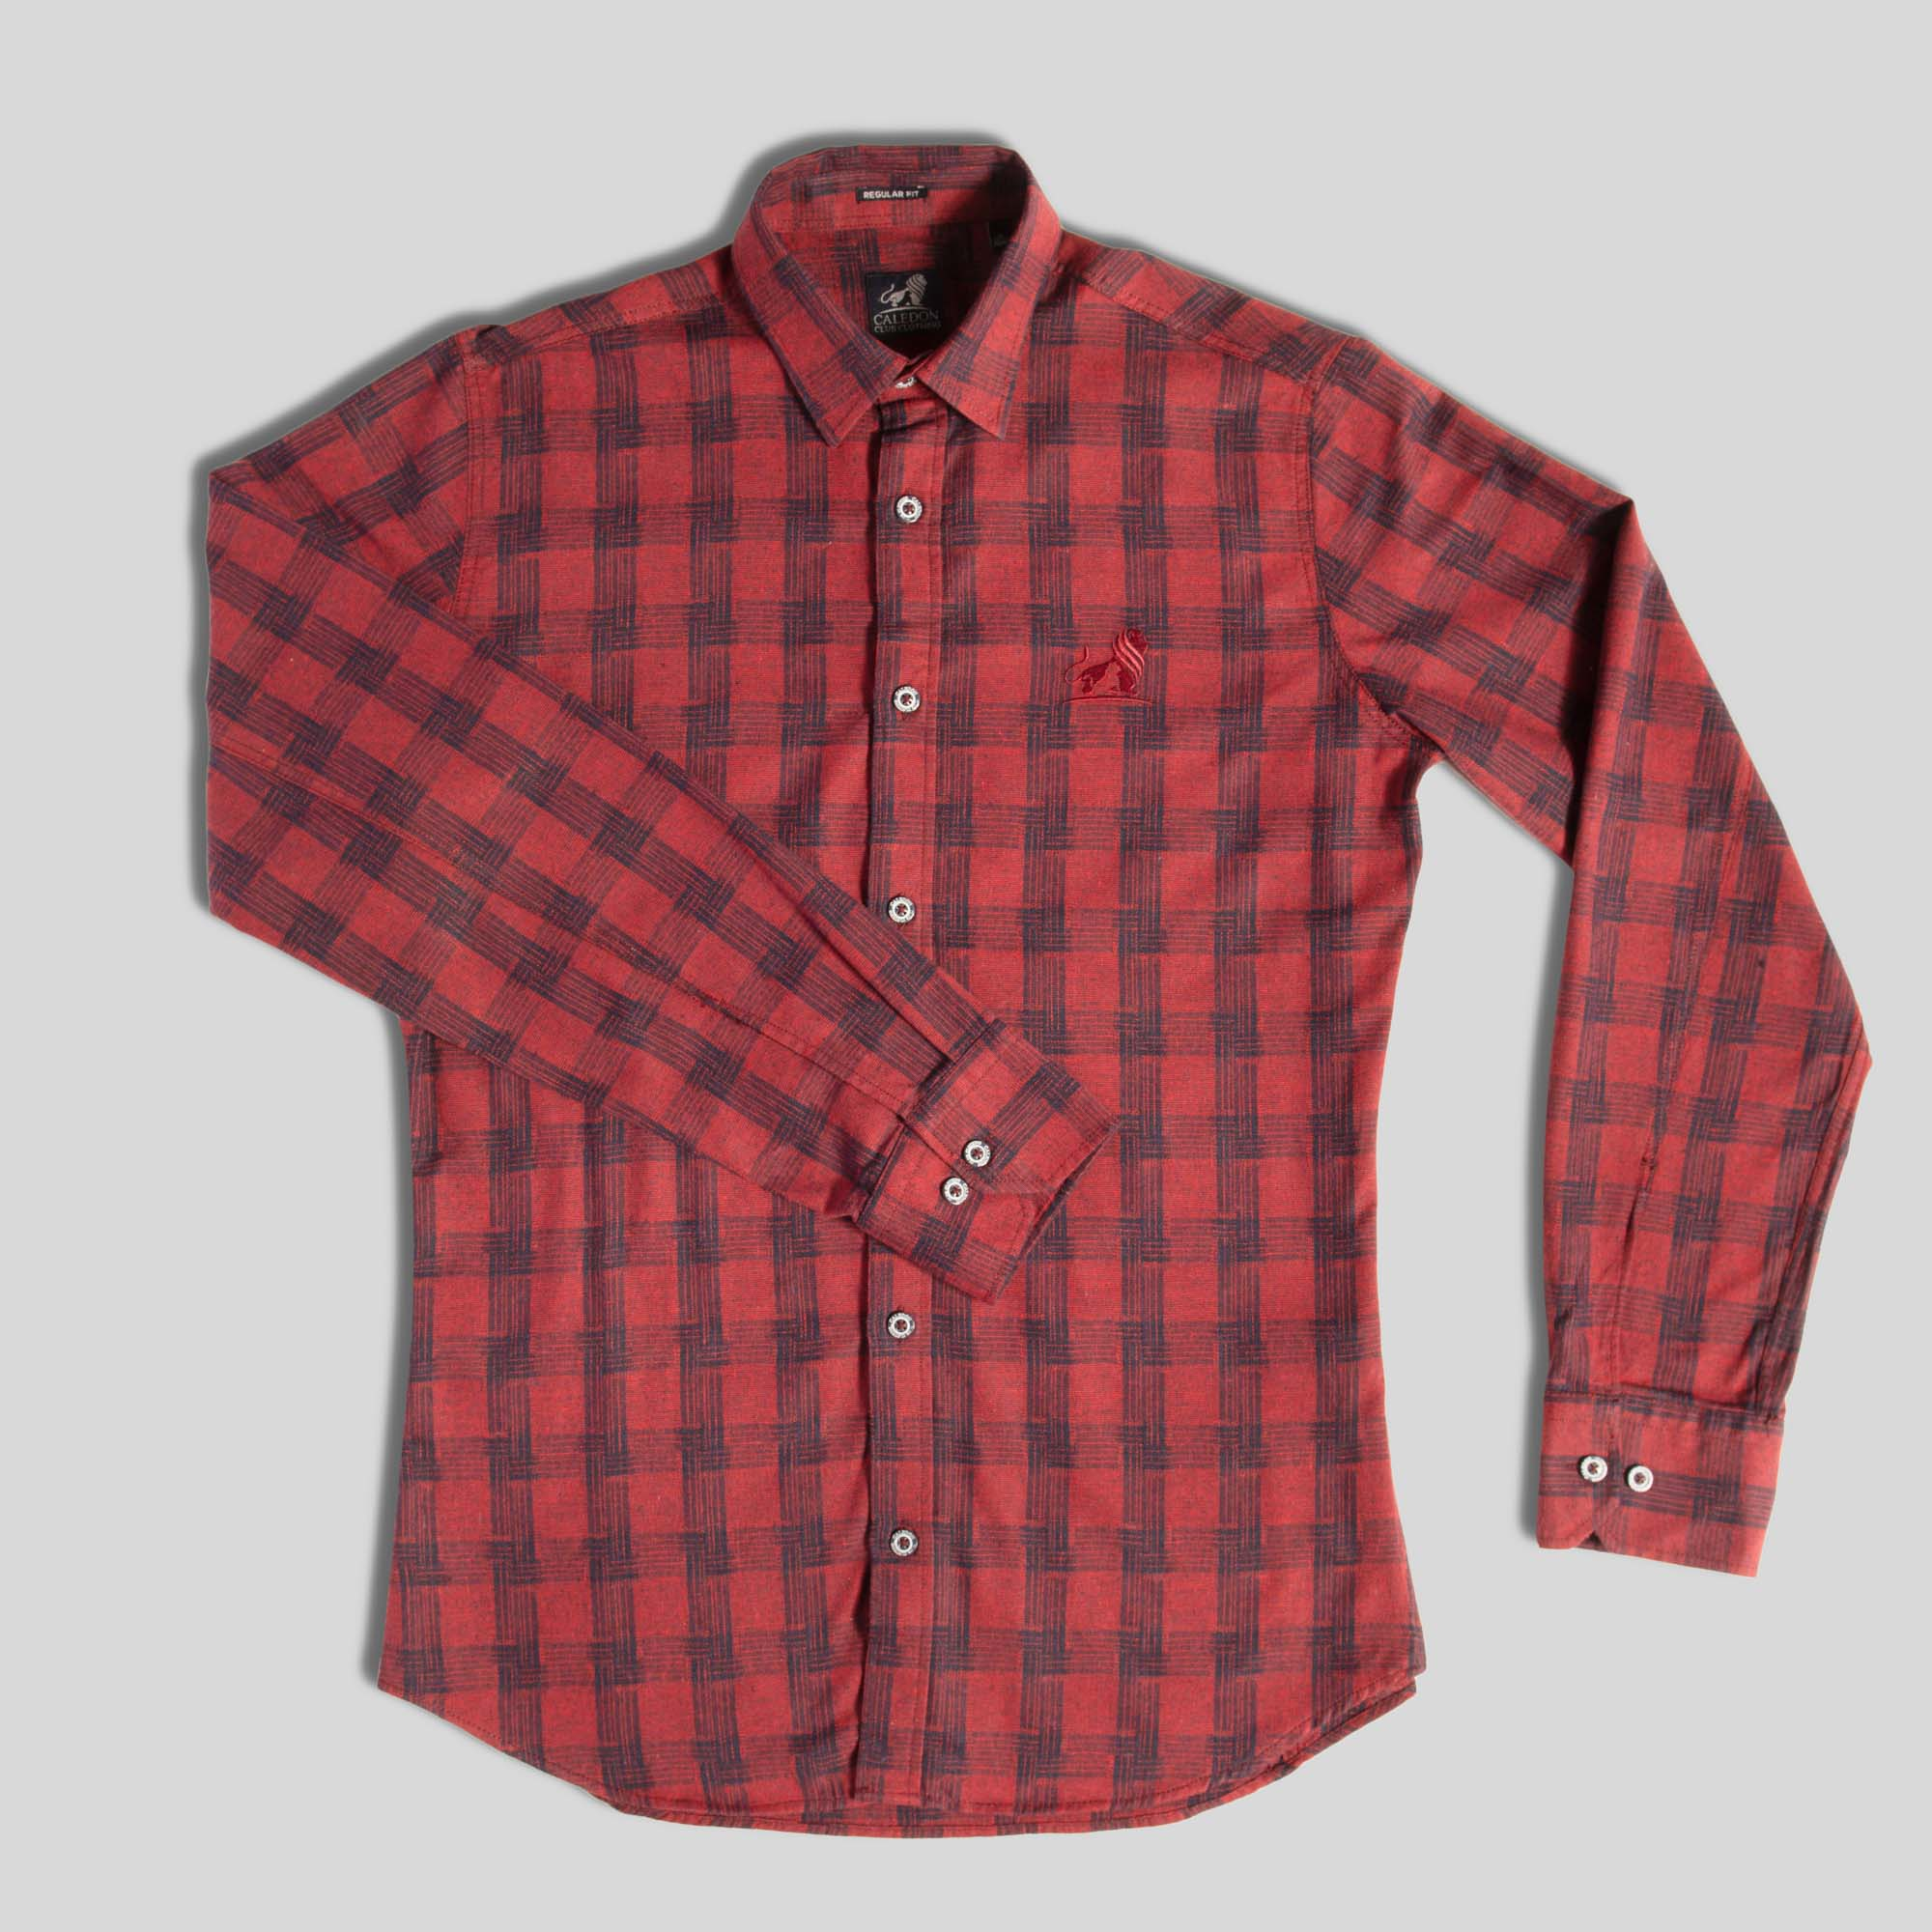 Mens Red and Black Lumberjack Shirt